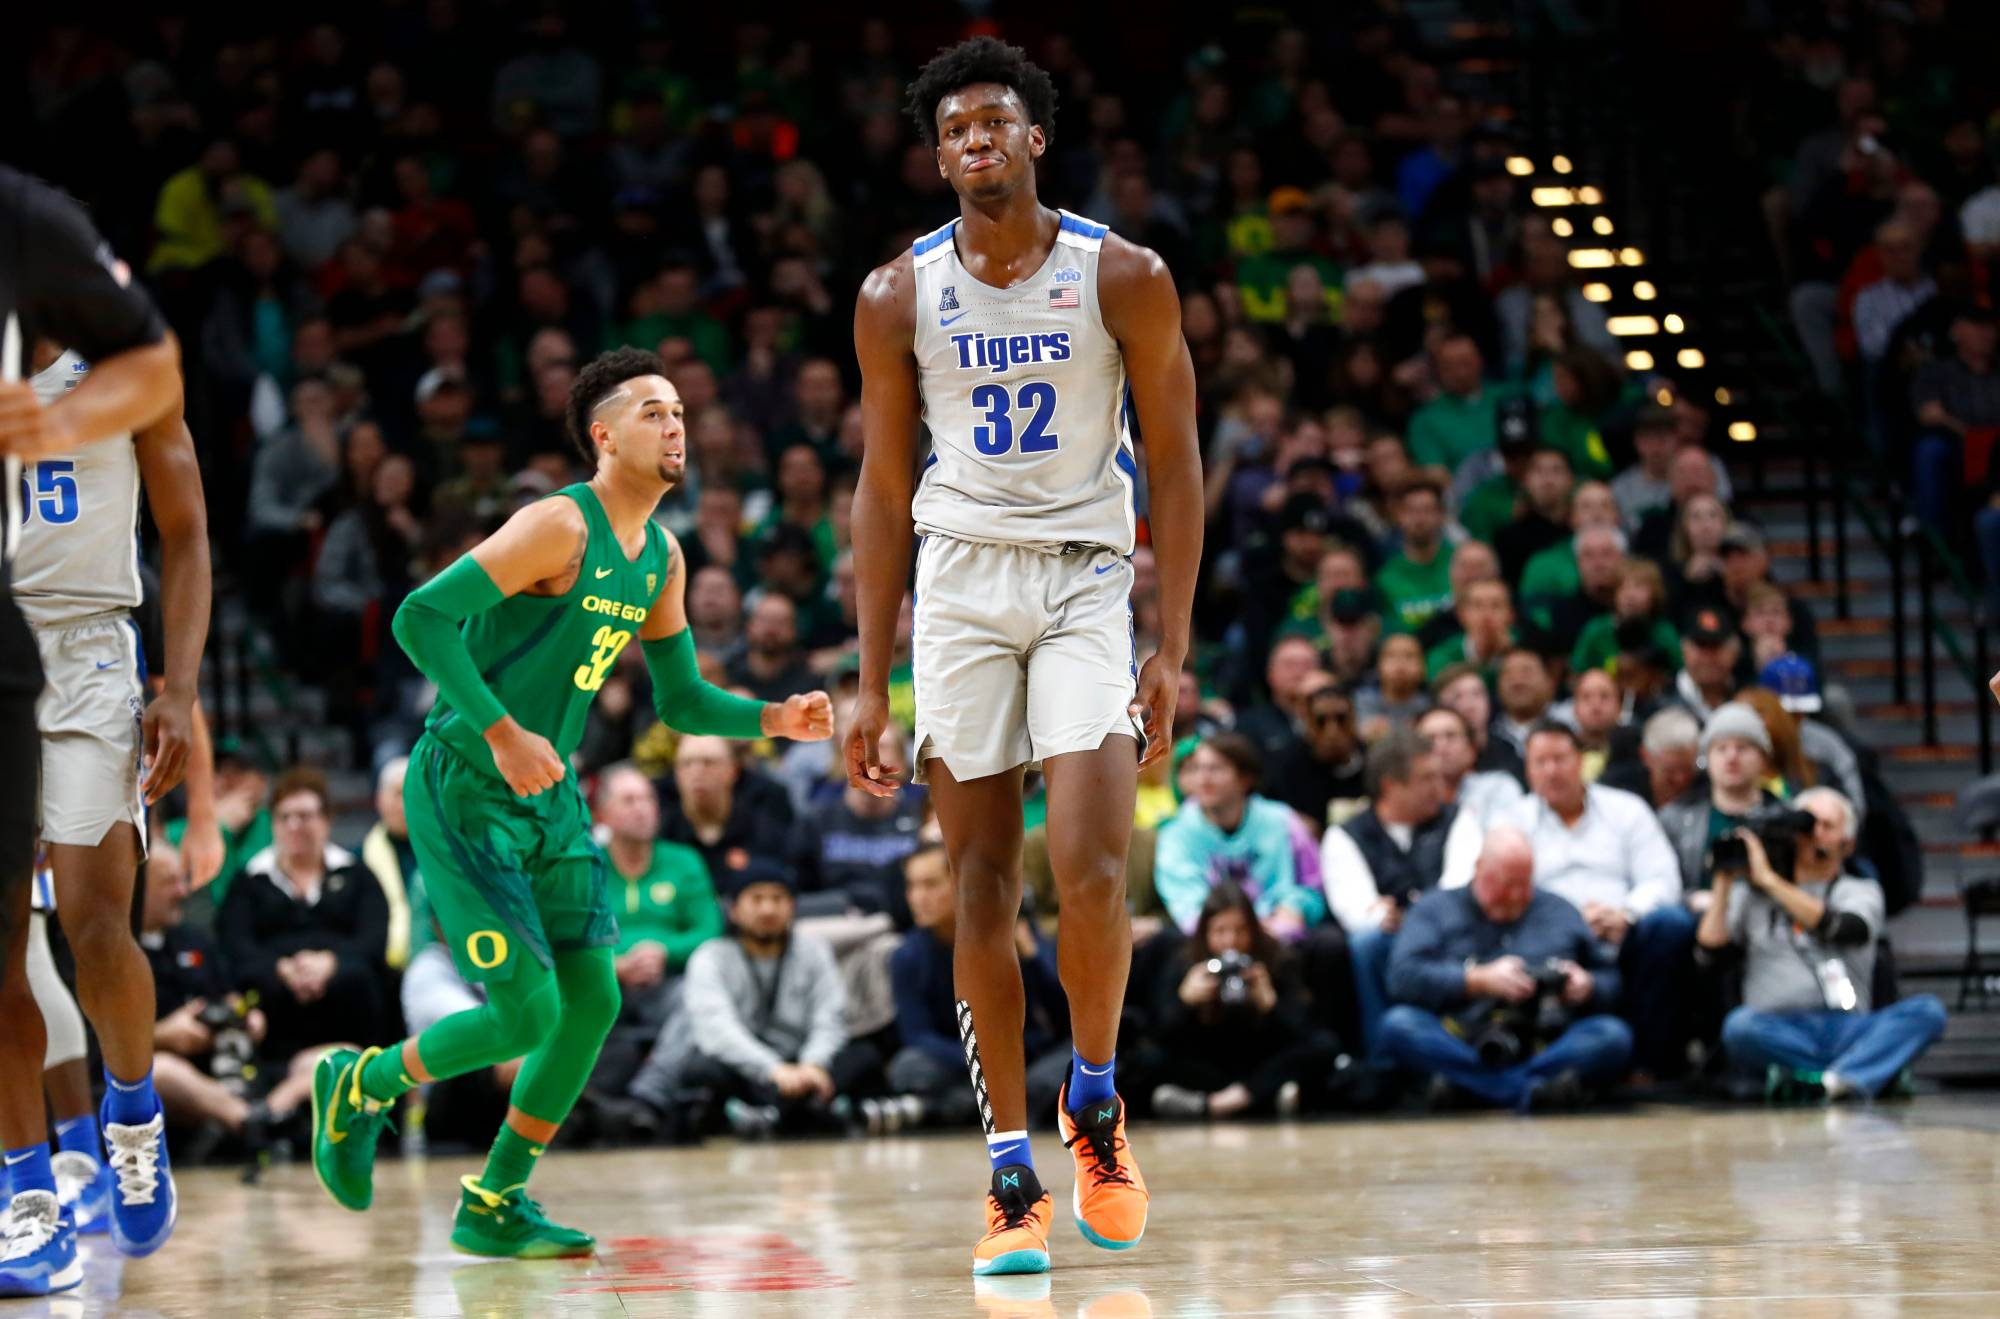 Memphis Tigers center James Wiseman shows his frustration during their 82-74 loss to the Oregon Ducks at the Moda Center in Portland, Ore. on Tuesday, Nov. 12, 2019.